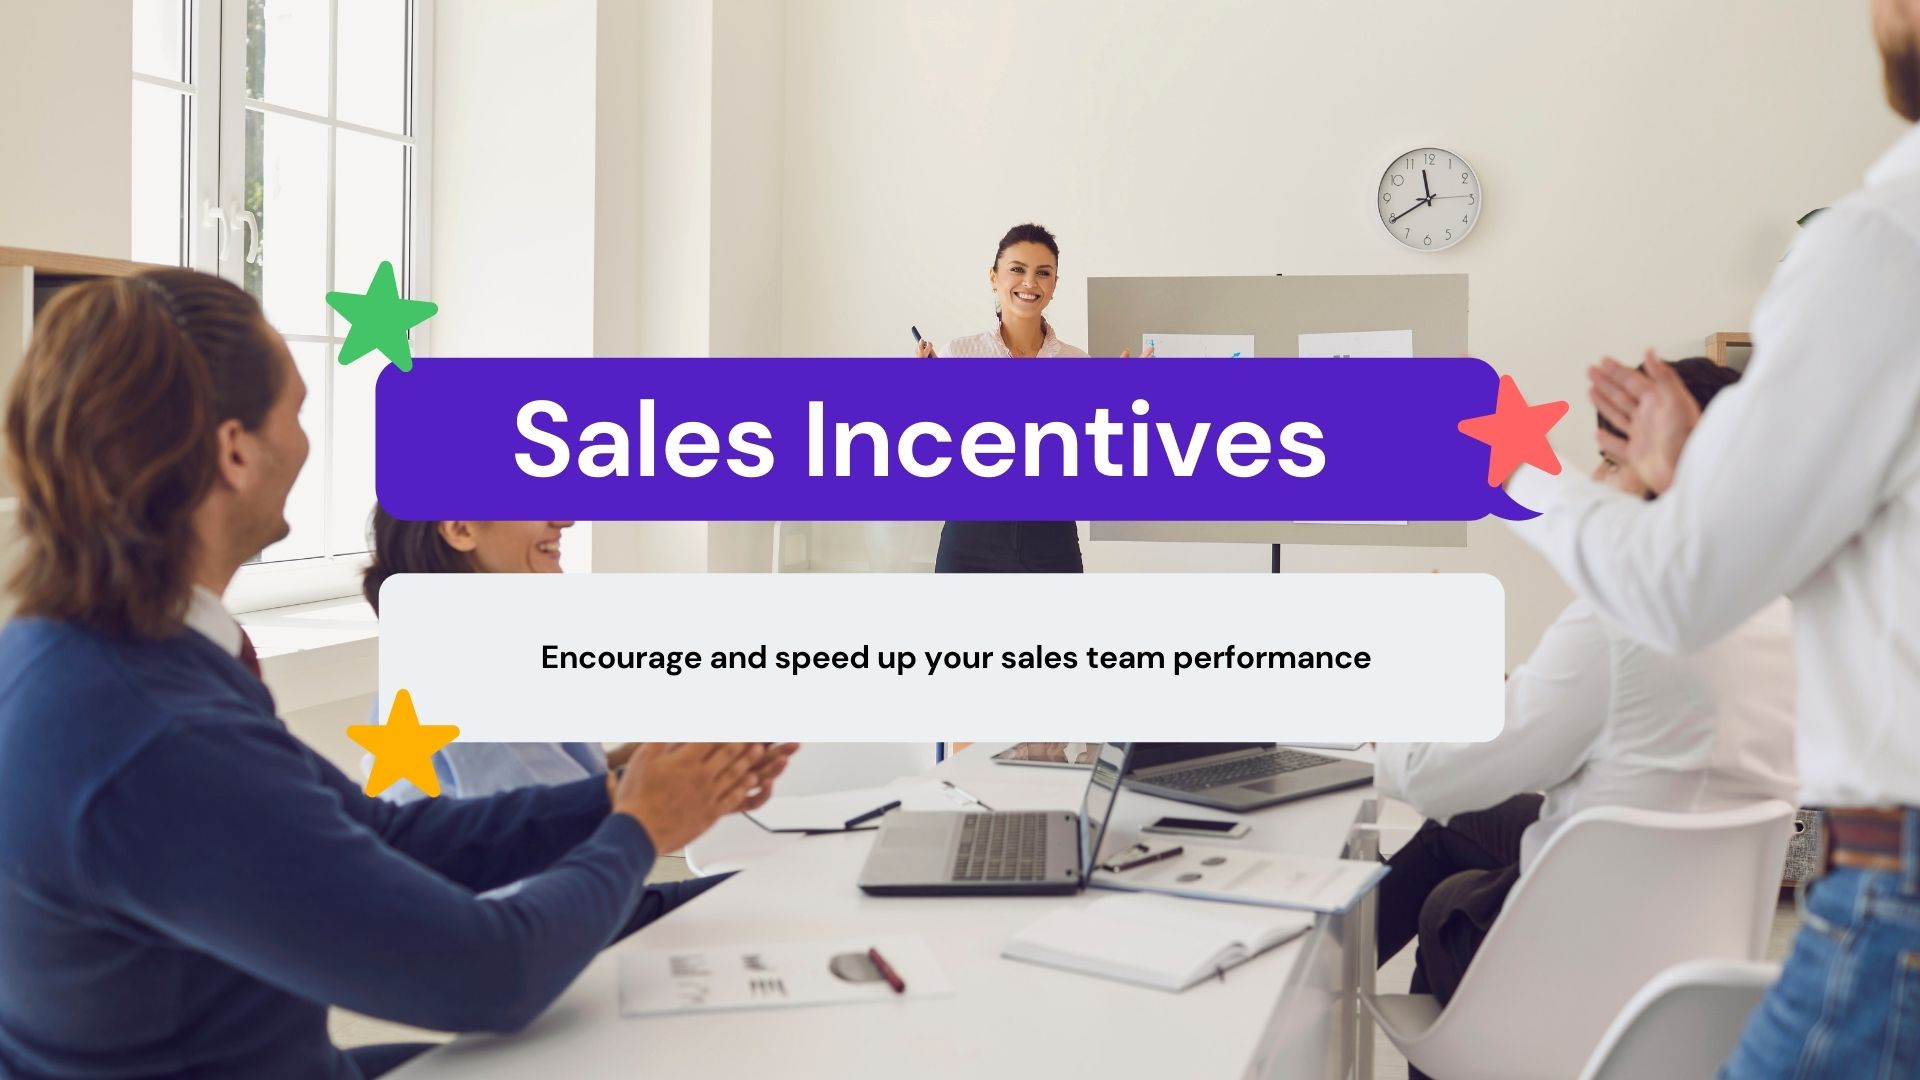 incentive plan for sales team